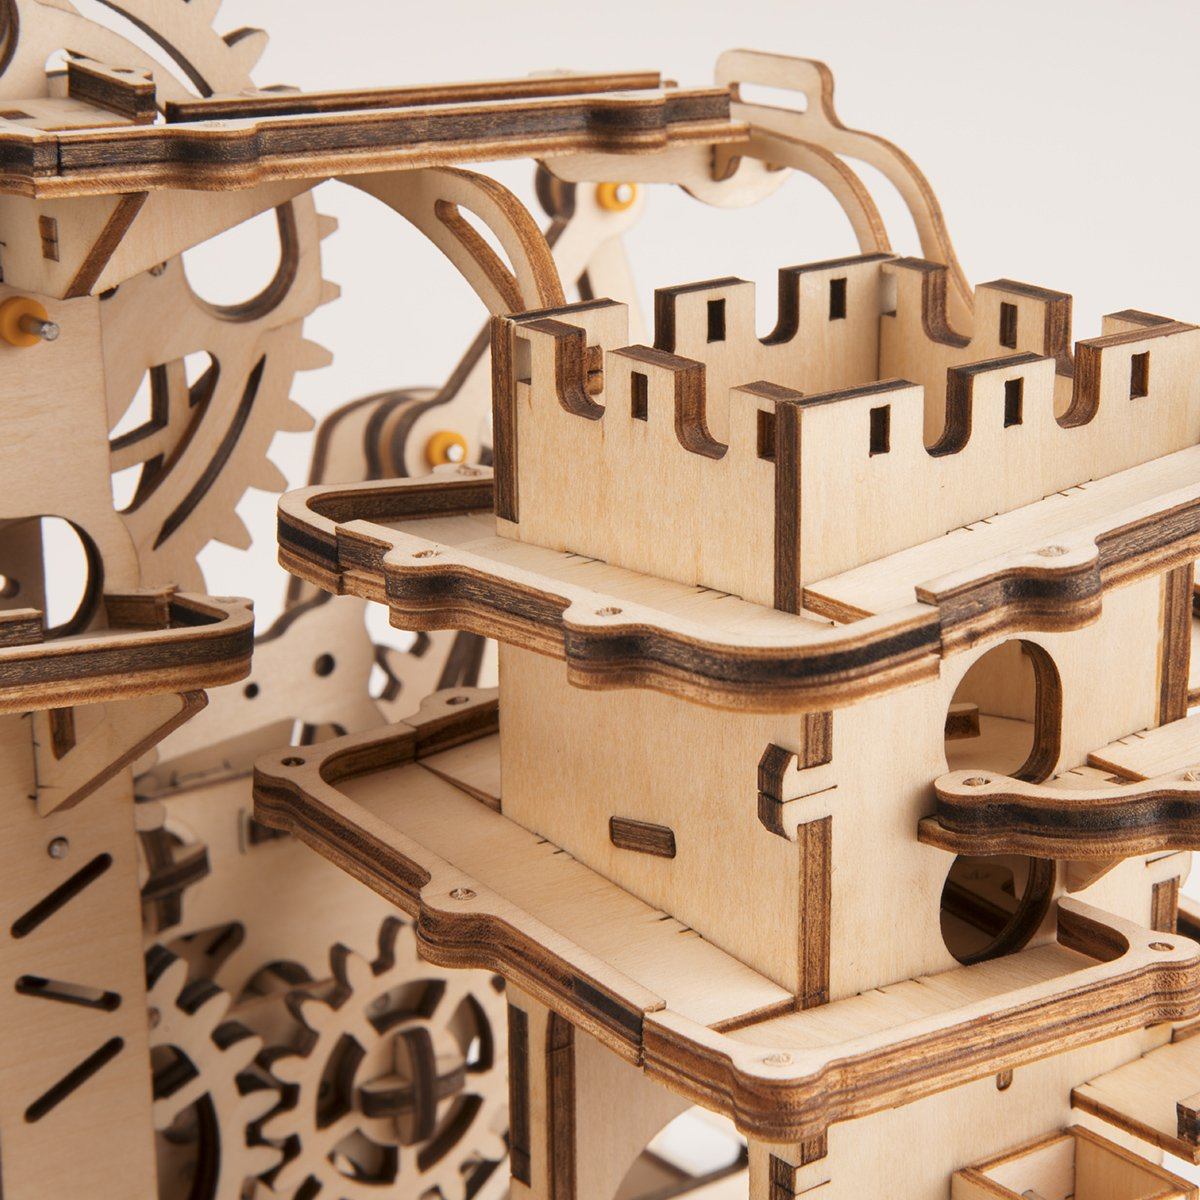 ROBOTIME 3D Wooden Puzzle Brain Teaser Toys Mechanical Gears Kit Unique Craft Kits Tower Coaster with Steel Balls Executive Desk Toys Best Gifts for Adults and Kids by ROBOTIME (Image #7)